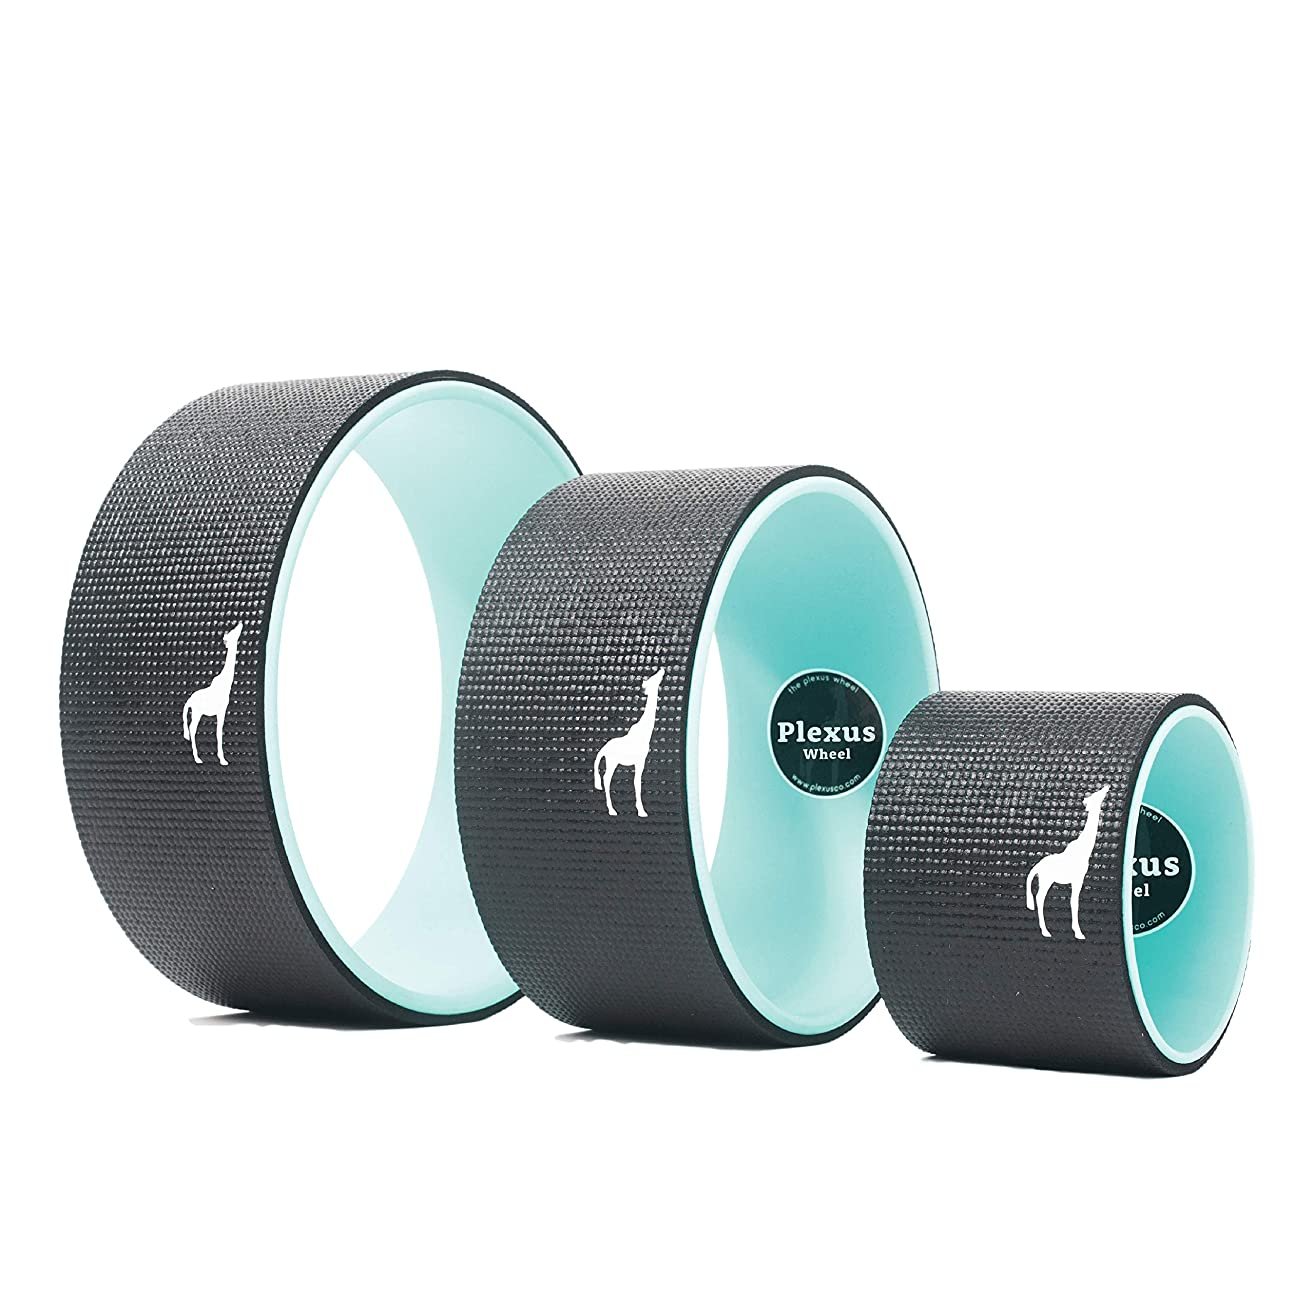 Plexus Wheel 3-Pack - Back Stretch Roller & Back Wheel for Yoga - Great for Classes Or in-Home Use - Optimal Back Roller Yoga Wheel for Back Pain Relief - (6 inch, 10 inch, 12 inch)